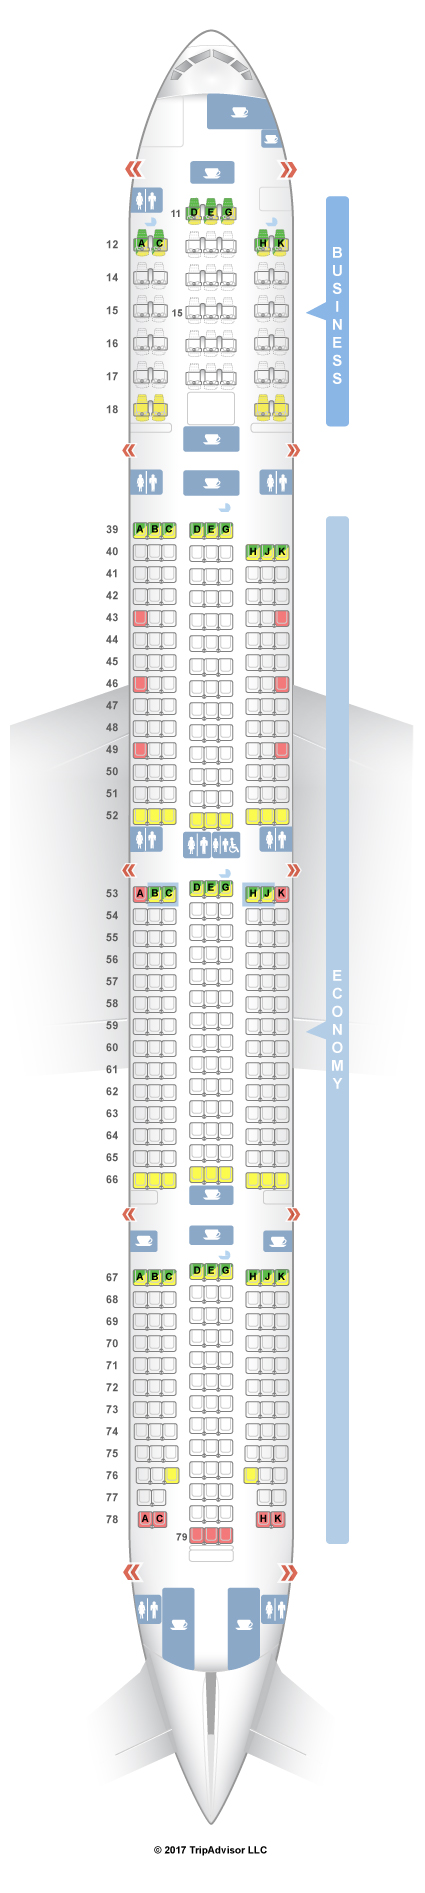 Cathay Pacific Seat Map SeatGuru Seat Map Cathay Pacific Boeing 777 300 (73Z) New Regional Cathay Pacific Seat Map